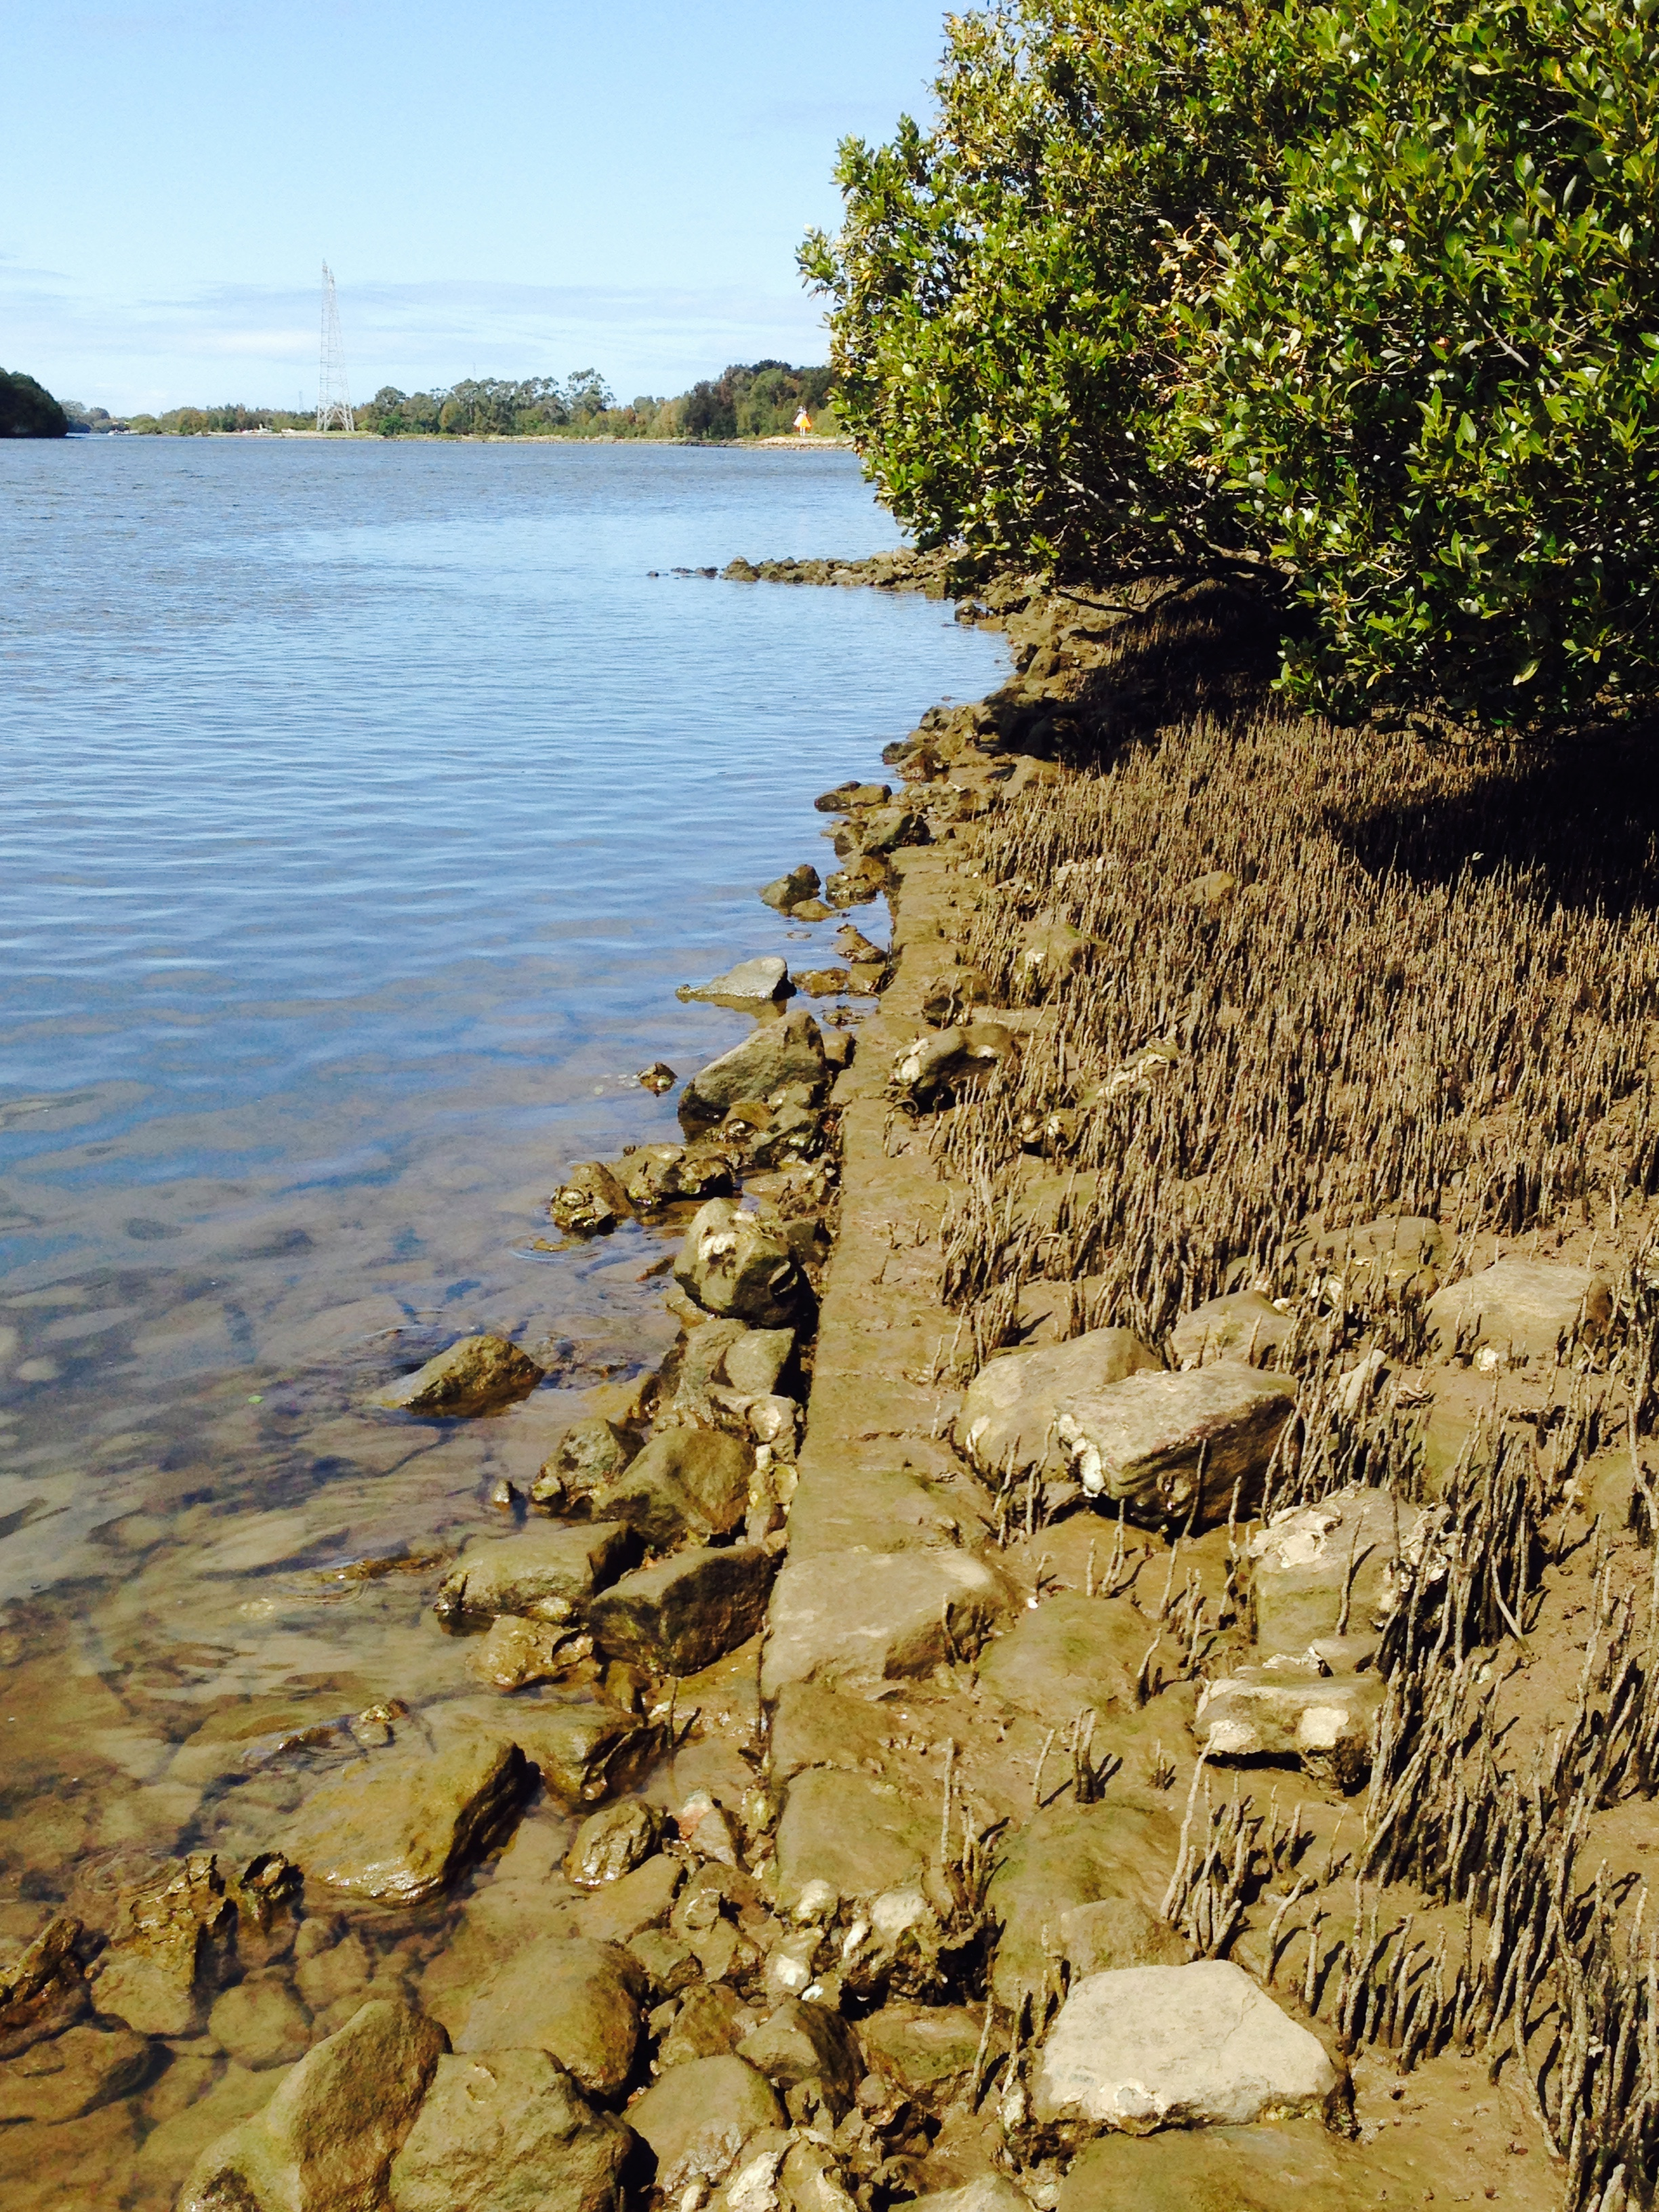 Remains of original river wall and possibly pier in distance. (Photographed September 2014 by Gionni Di Gravio)